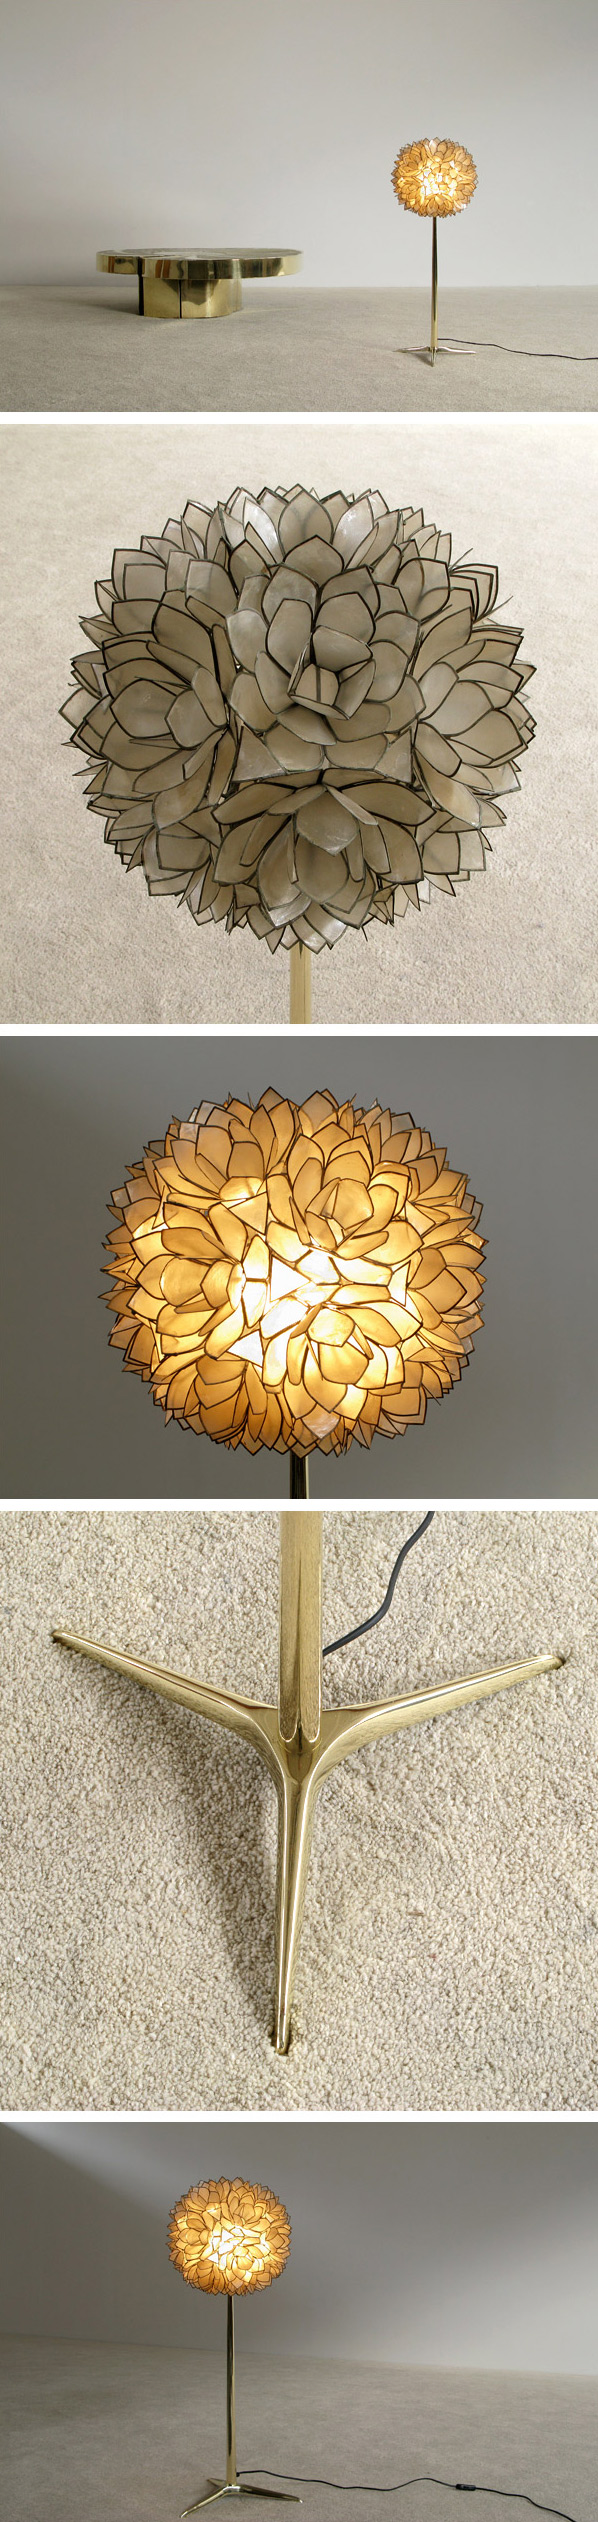 Decorative flower ball Mother of Pearl floor lamp Large